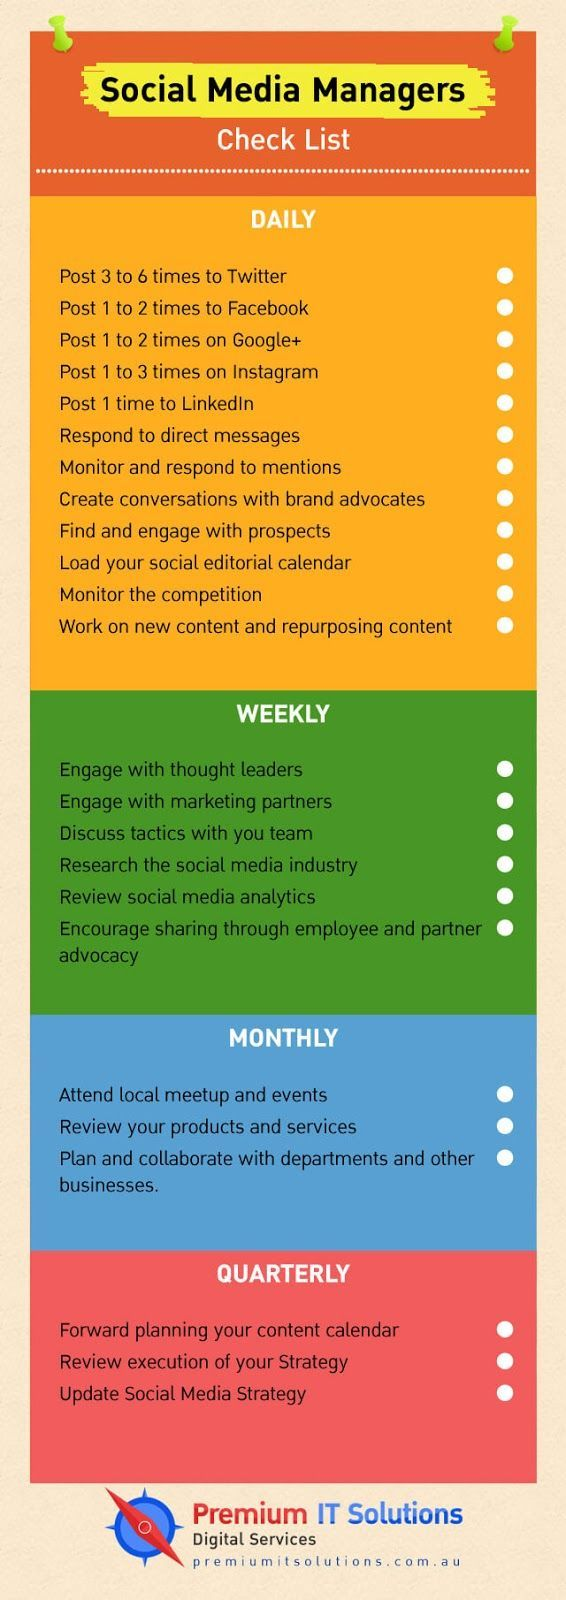 Social Media Checklist For Business  Social Media